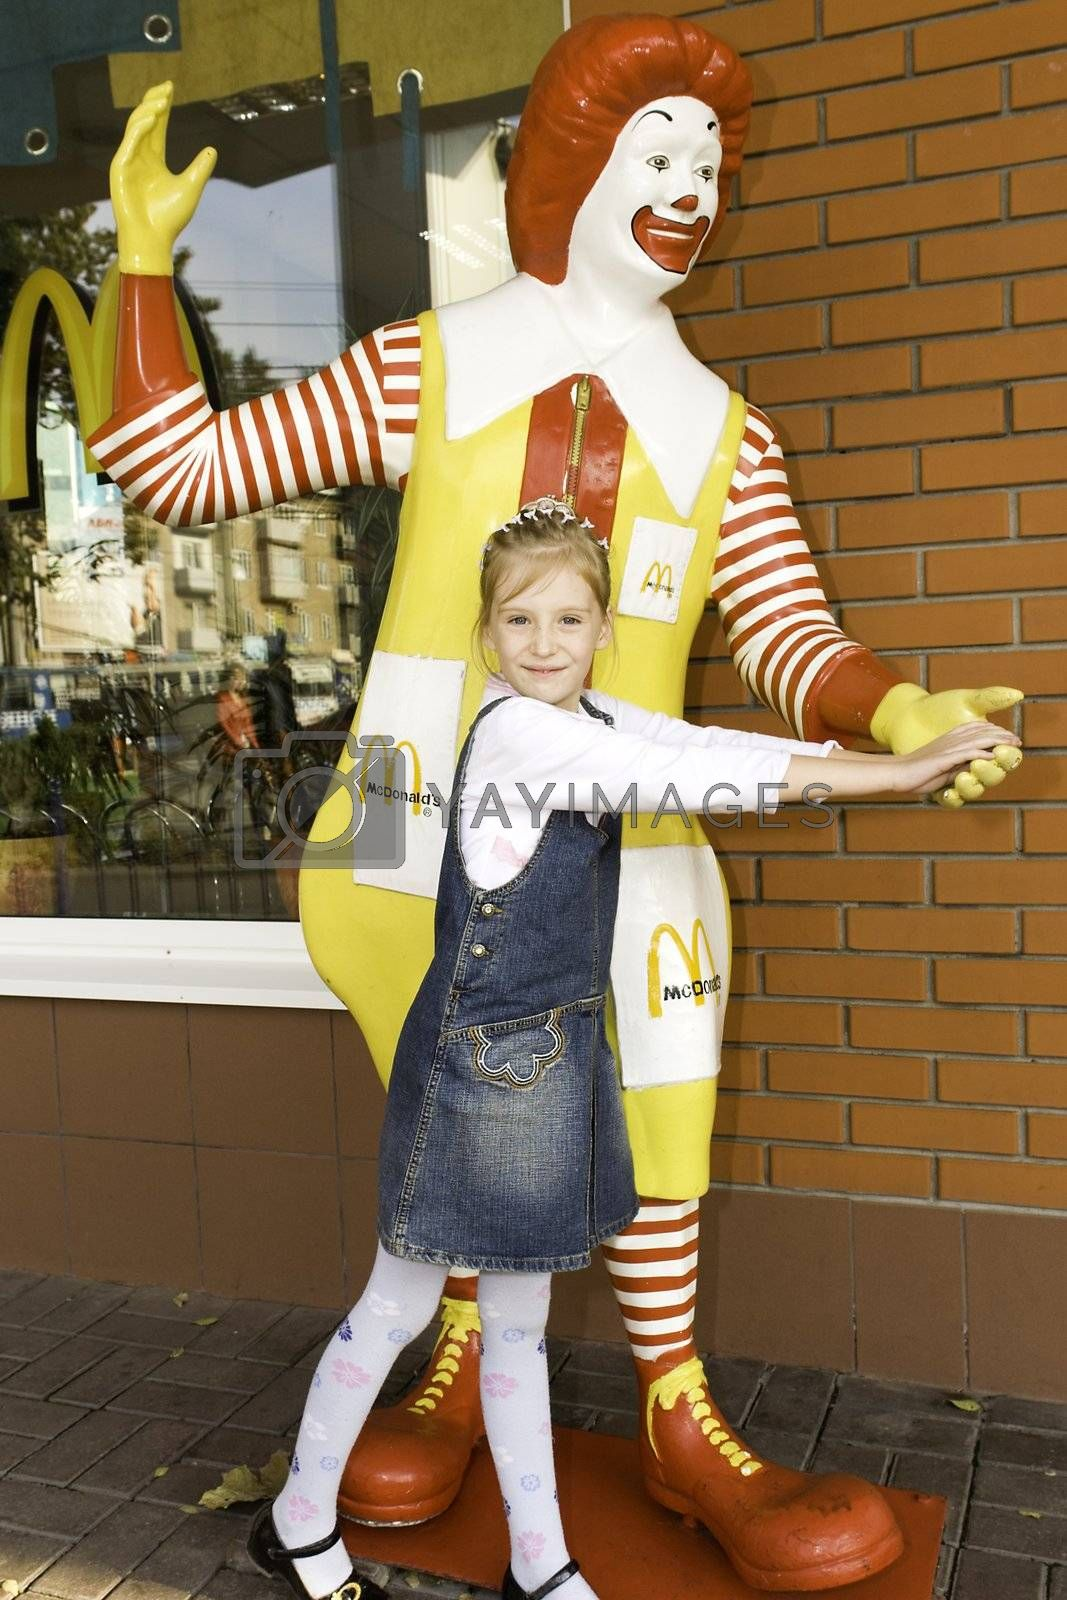 The child in a McDonalds